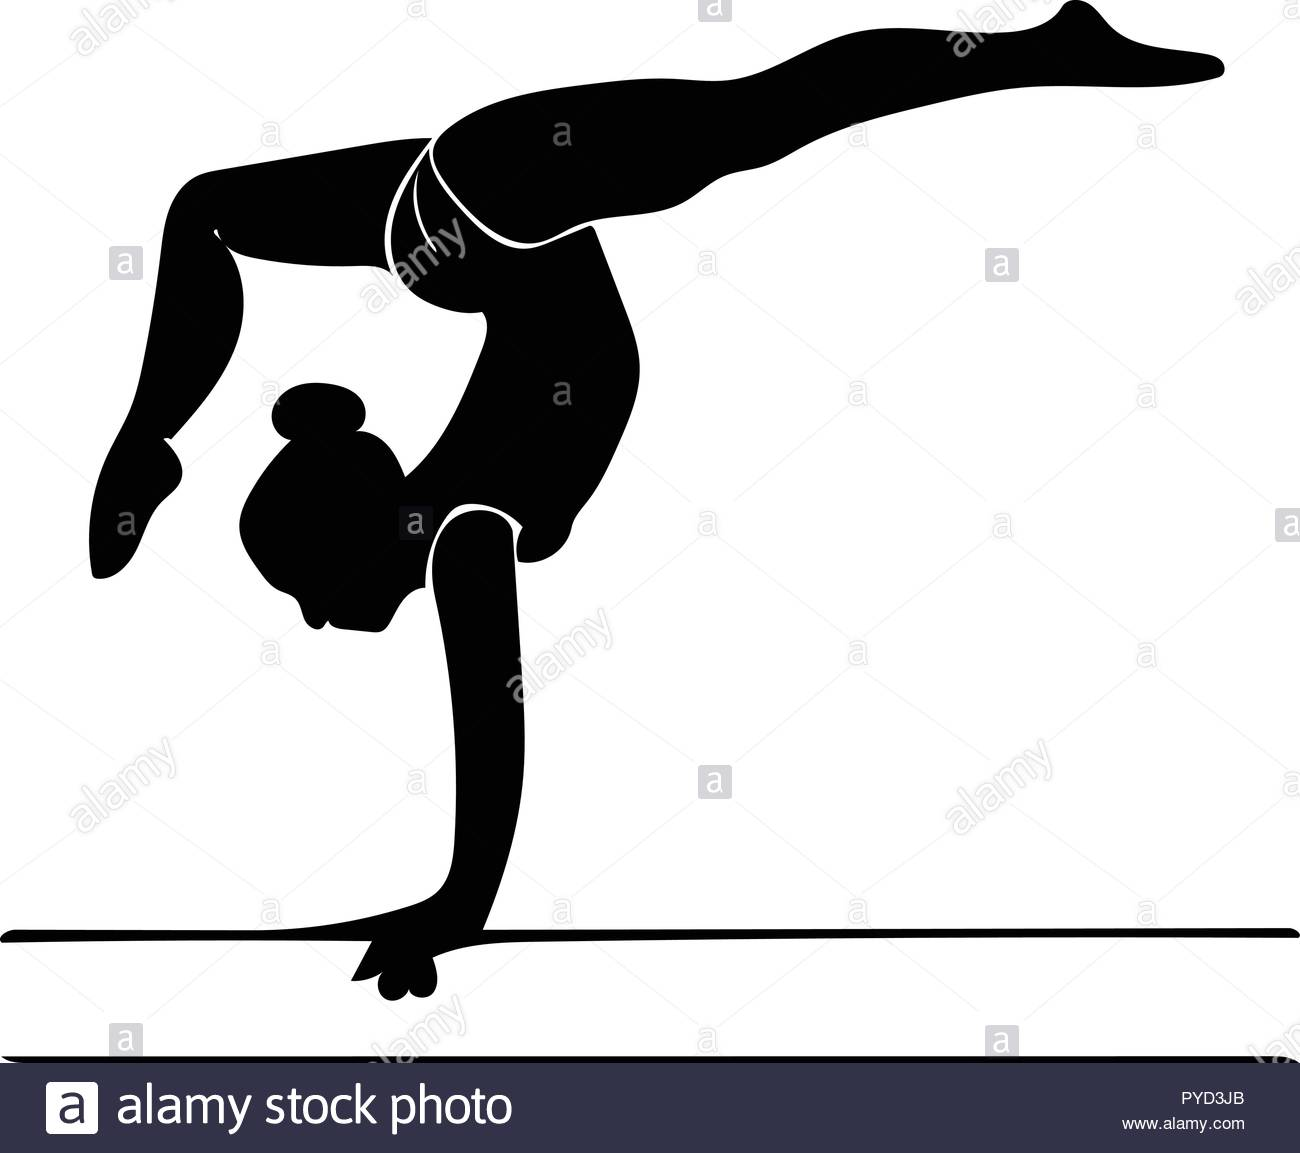 Silhouette vector graphic of gymnast on beam performing a.